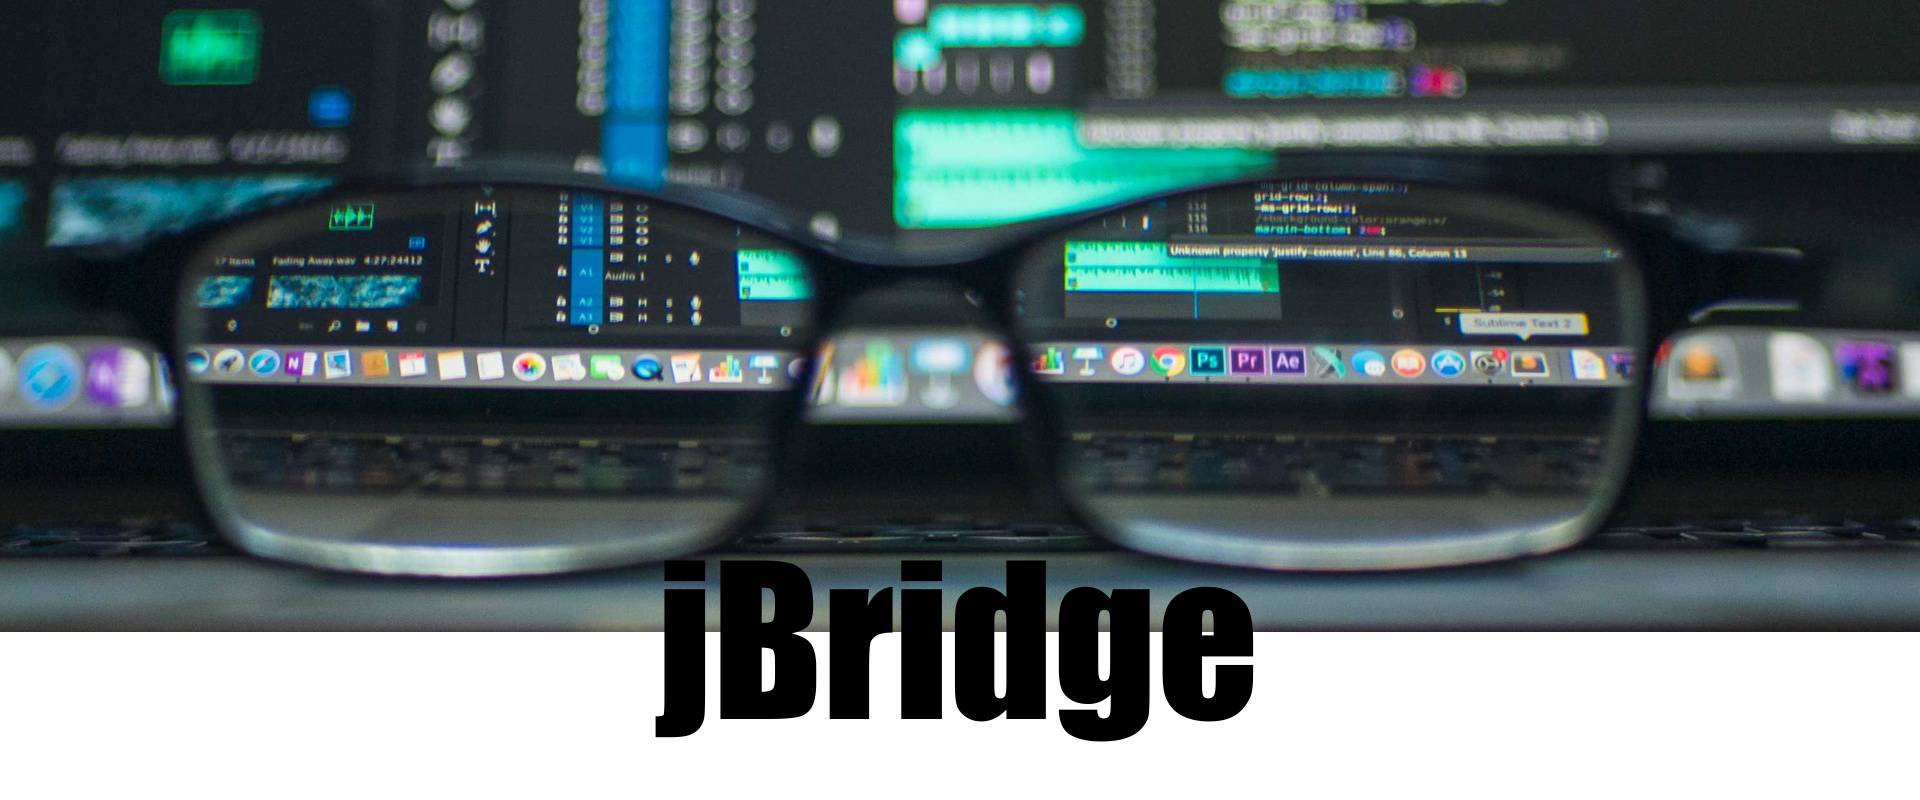 How to use? jBridge is an application designed for bridging